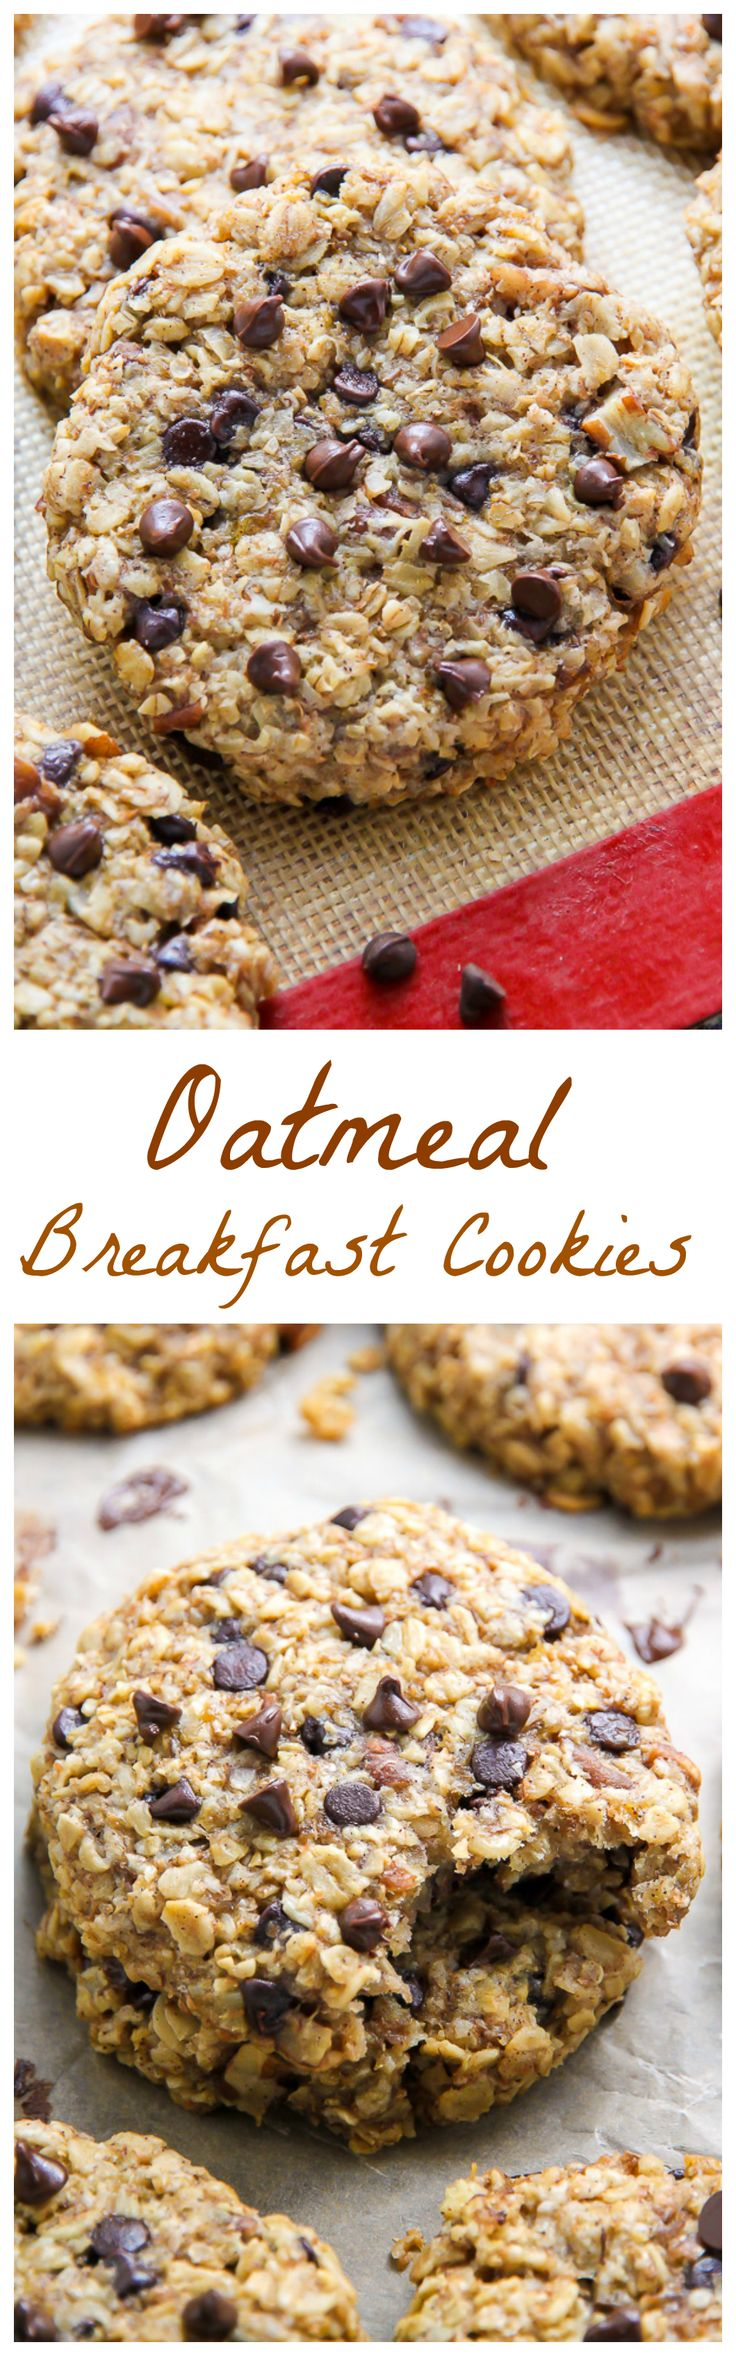 Cookies that taste like banana bread with chocolate:) Whole grain kids' snack!